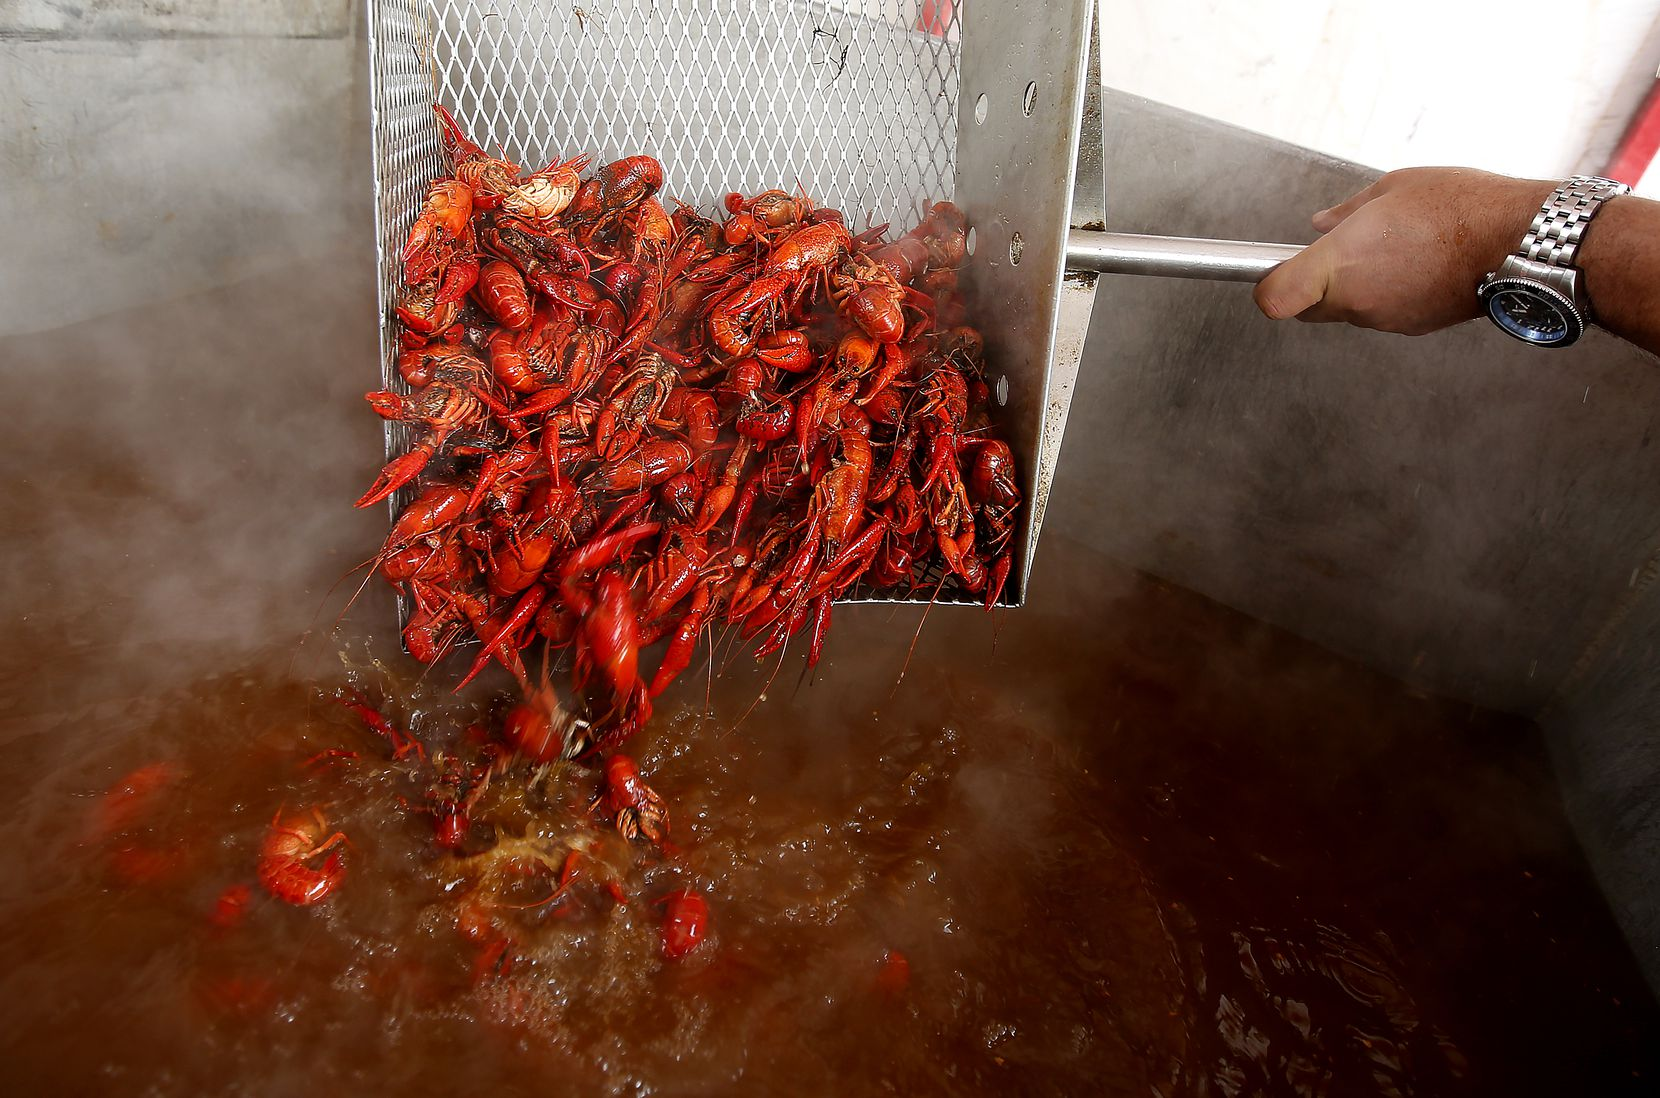 Crawfish are boiled during the 2nd Annual Frisco Crawfish Festival called Claws for Paws which benefits Habitat4Paws.org at Rockin S Bar & Grill in Frisco, Texas, Sunday, April 2, 2016. (Anja Schlein/Special Contributor)